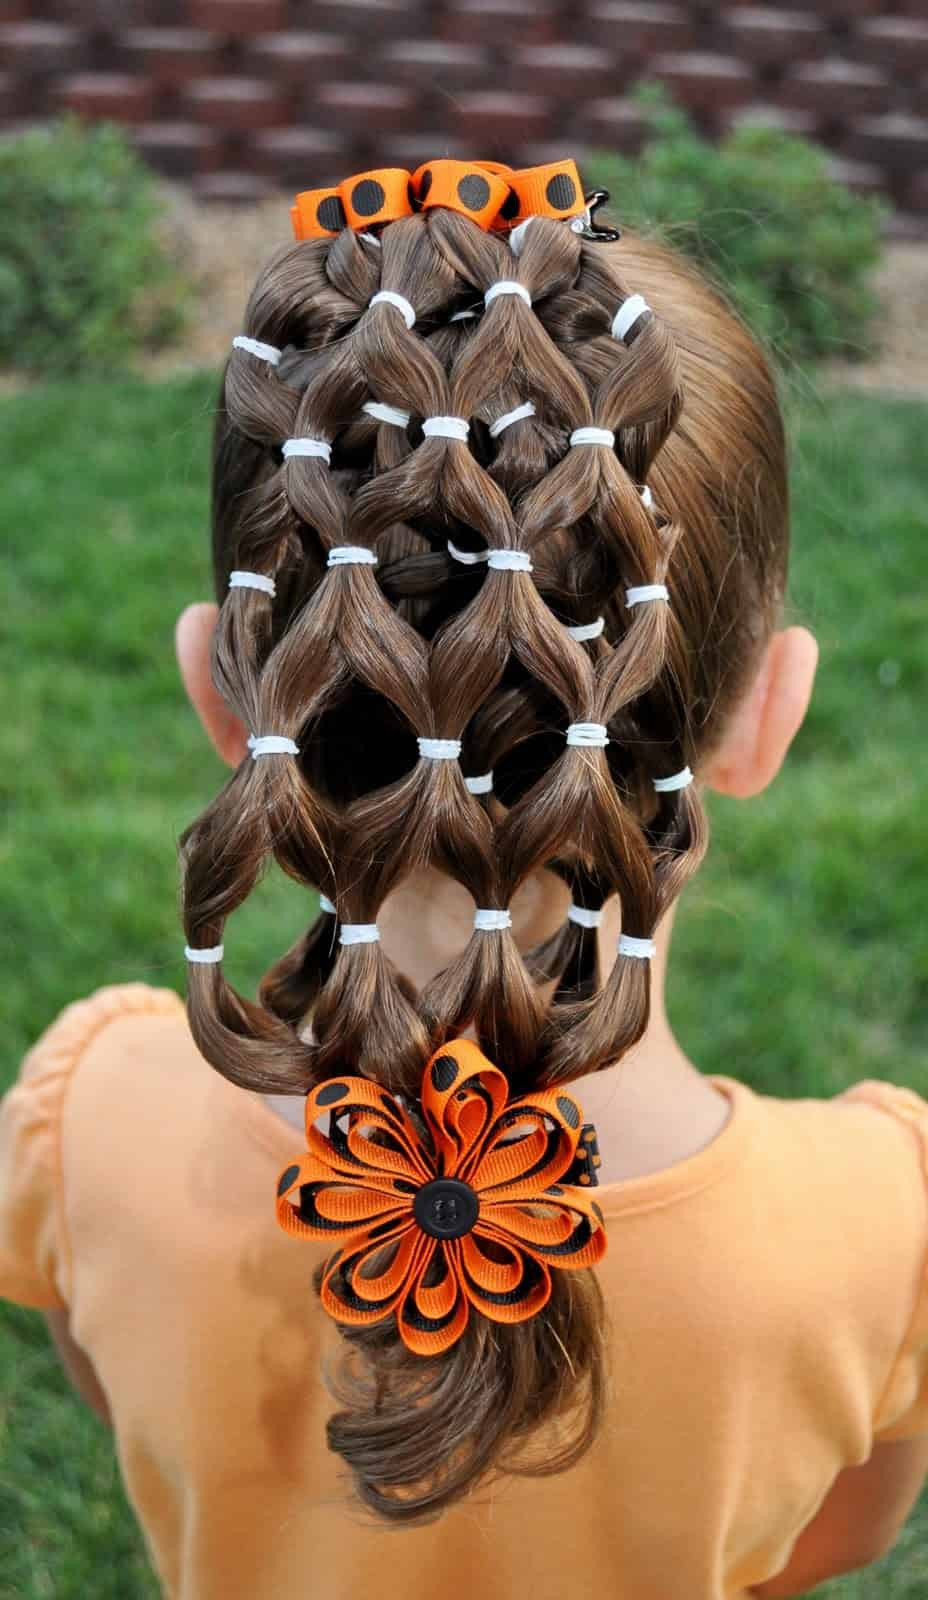 Best ideas about Cute Halloween Hairstyles . Save or Pin The Best Cute Halloween Hairstyles – Great For Crazy Hair Now.